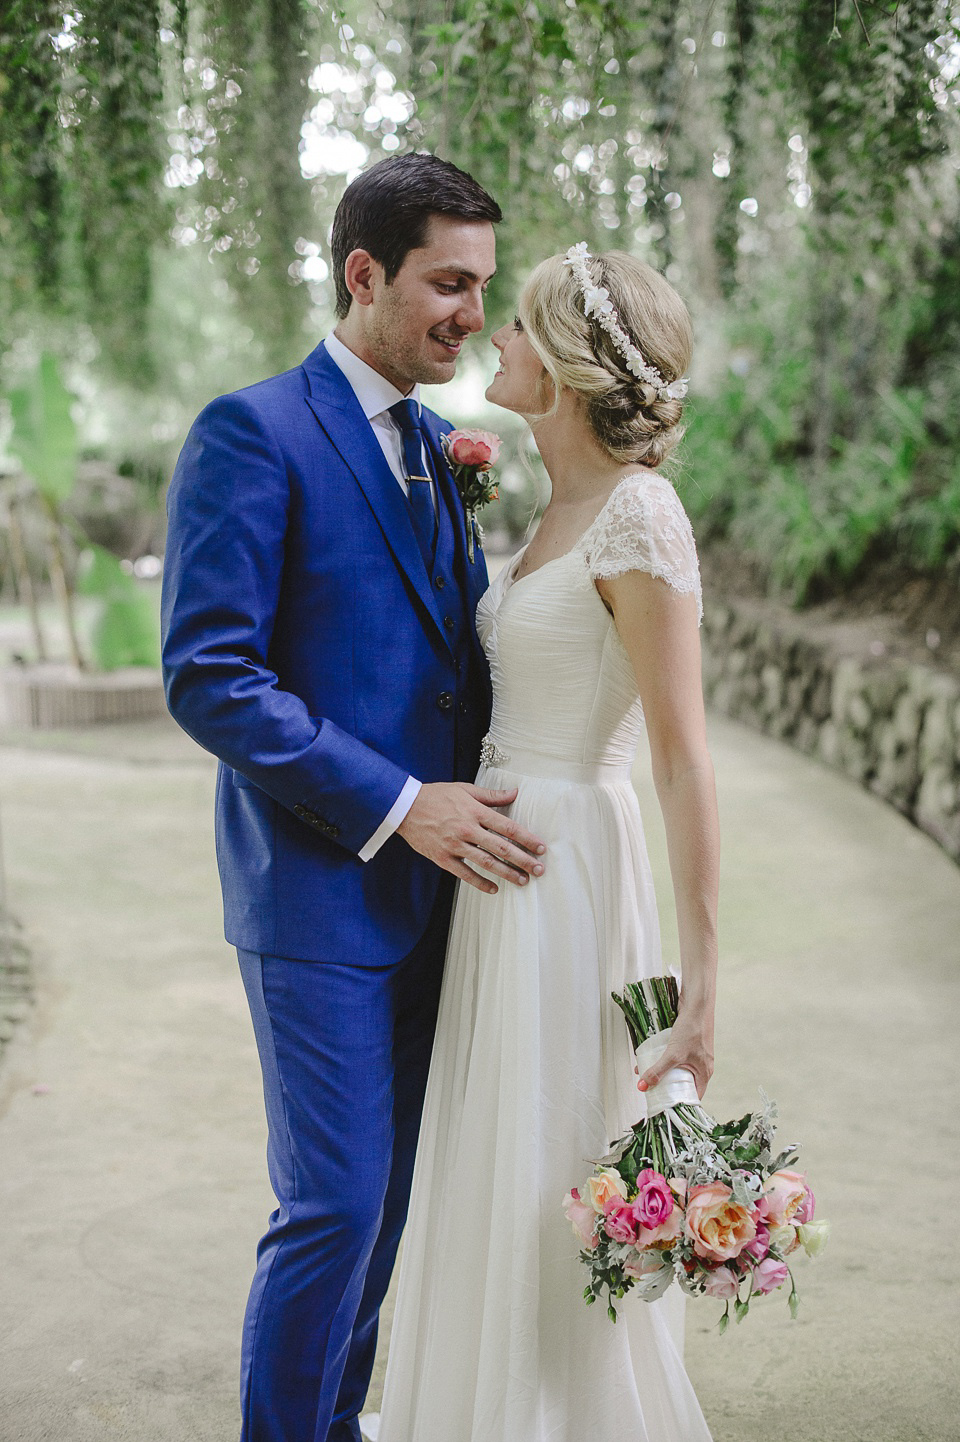 c4d2812281 wpid suzanne neville party wedding portugal - A Suzanne Neville Gown and  Pretty